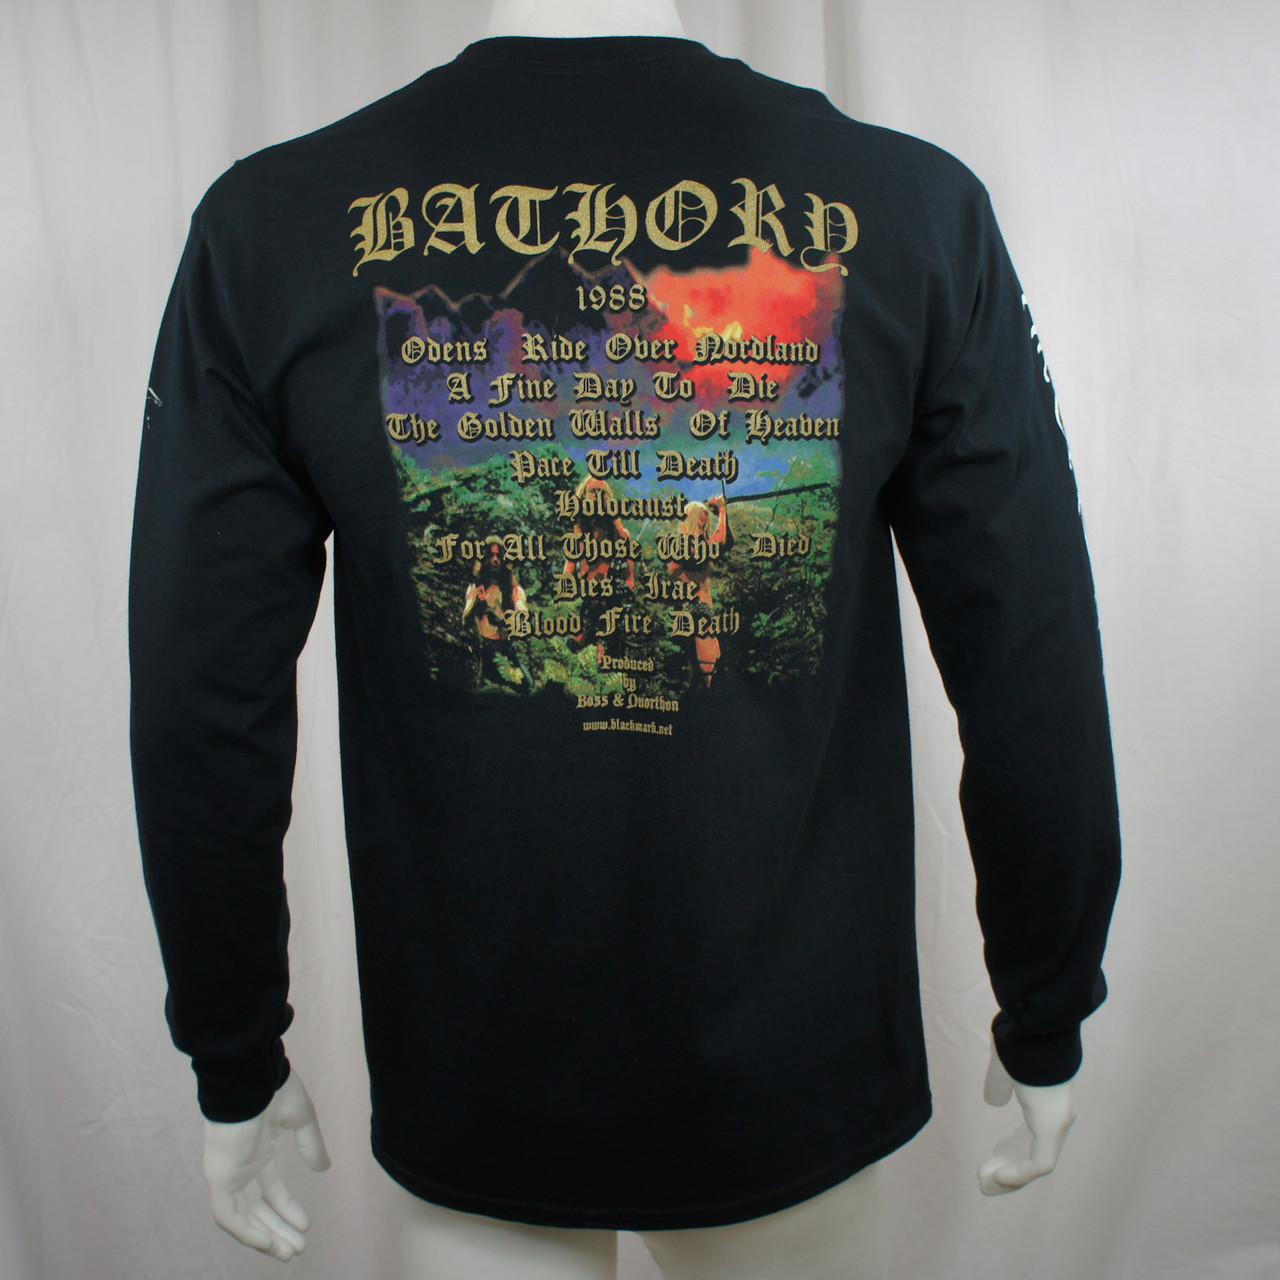 http://d3d71ba2asa5oz.cloudfront.net/12013655/images/10054252_c%20bathory%20blood%20fire%20death-225.jpg